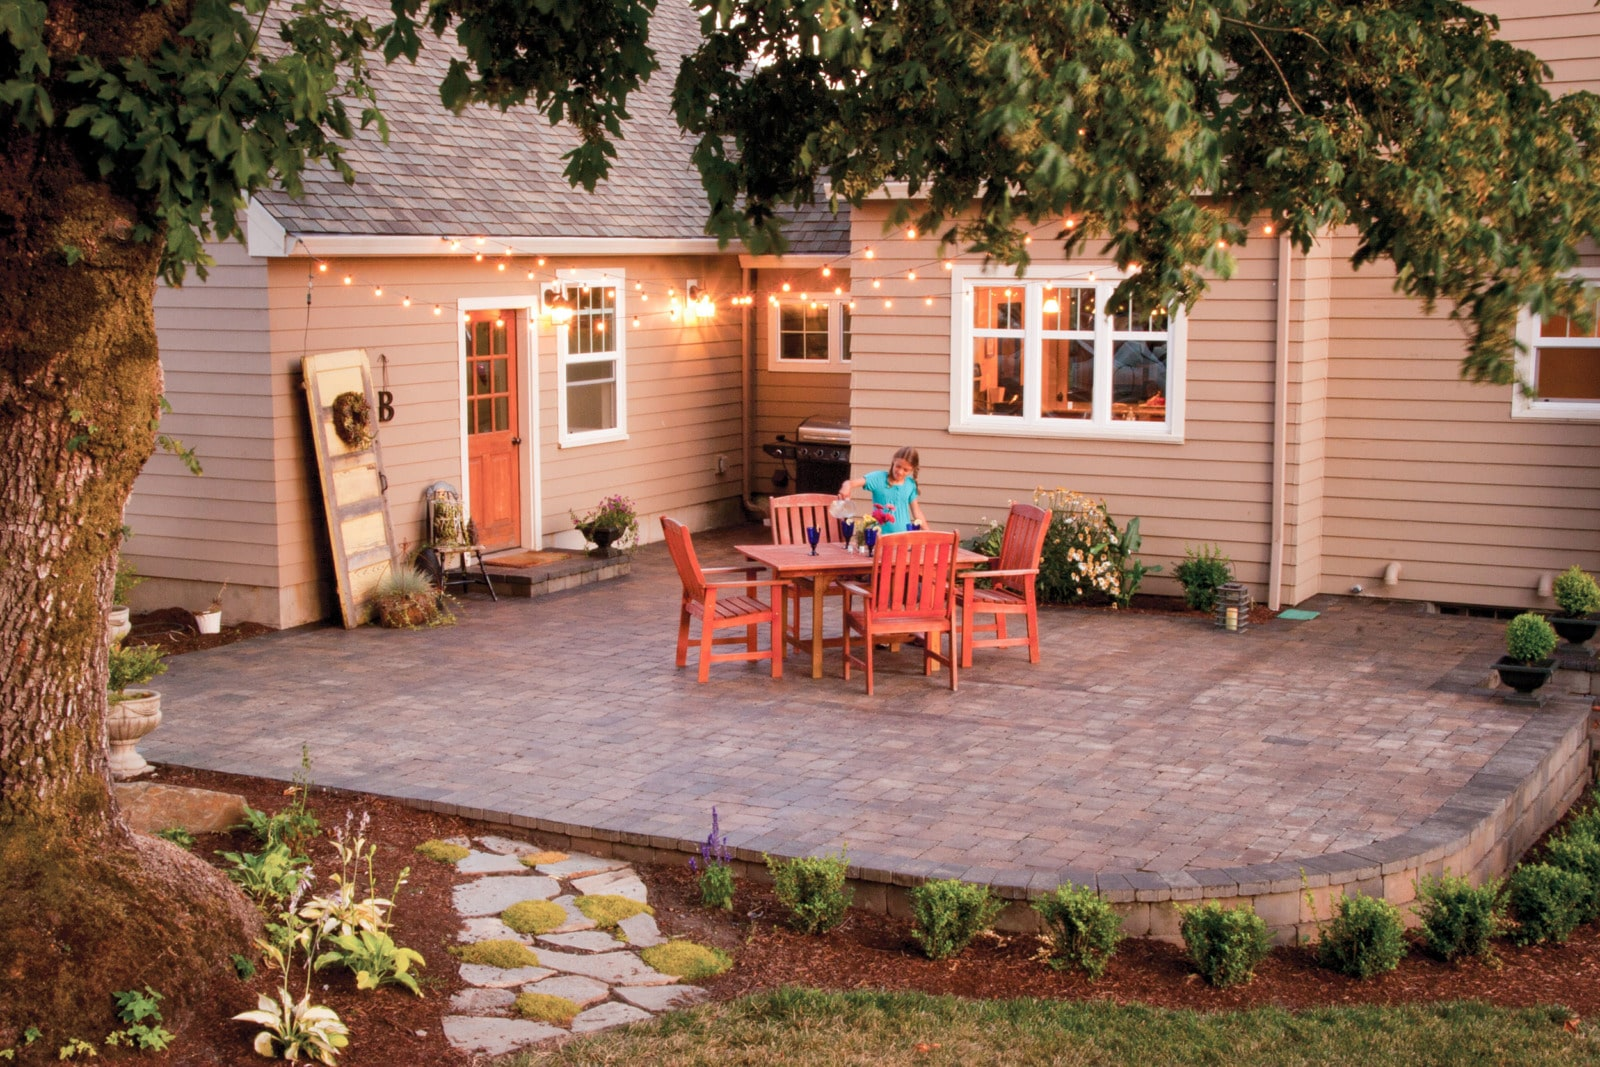 concrete vs pavers which is better